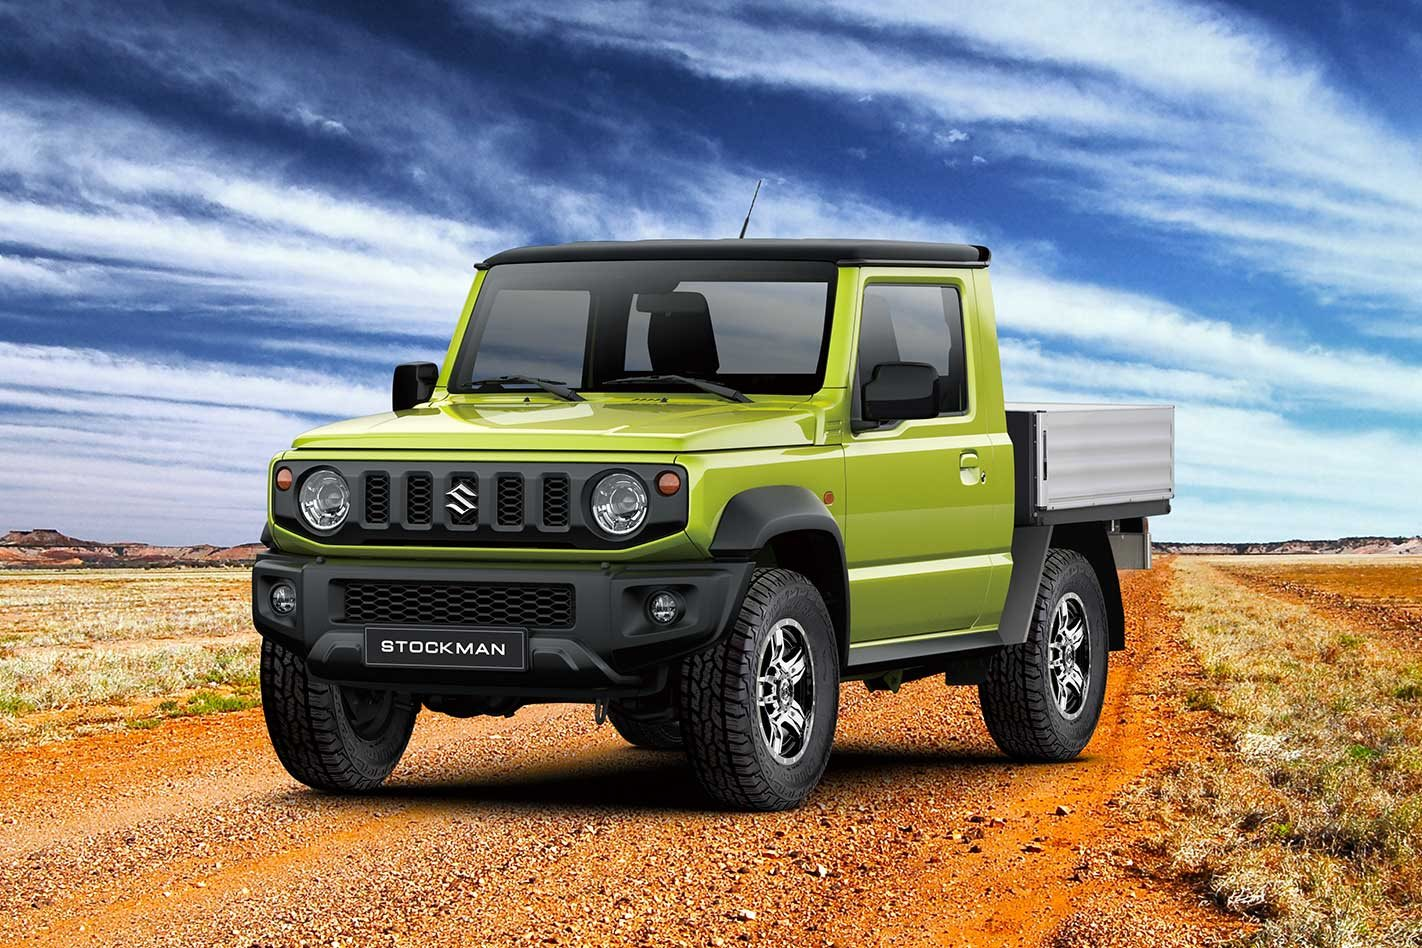 Suzuki needs to produce more variants of the Jimny